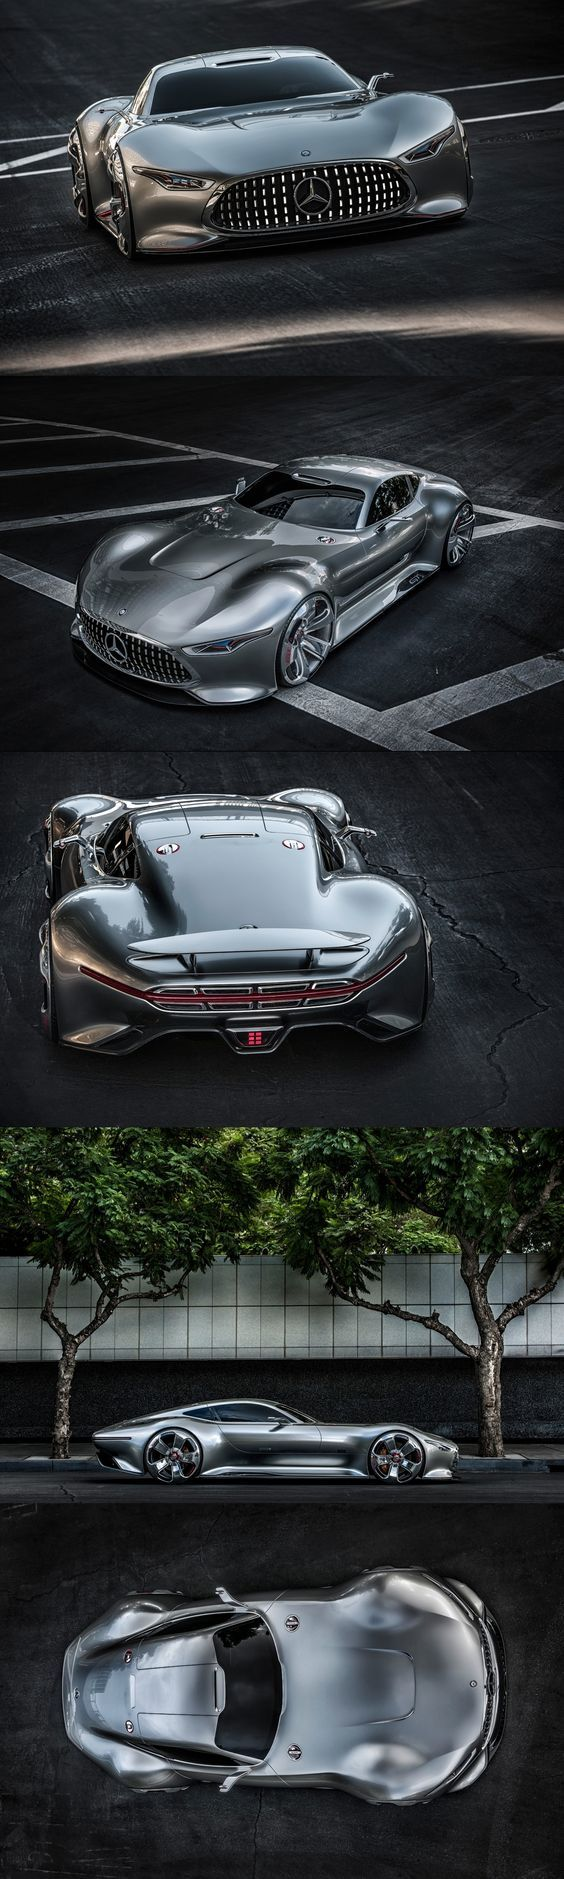 Mercedes AMG Vision Gran Turismo GET 106 ST TIRE & WHEEL GREAT DEALS AT ALL LOCATIONS: http://www.youtube.com/watch?v=IqoXUcN2_nc Come in to any of 106St Tire & Wheel 5 Queens location Wheel Alignme (Cool Quotes Relationships)